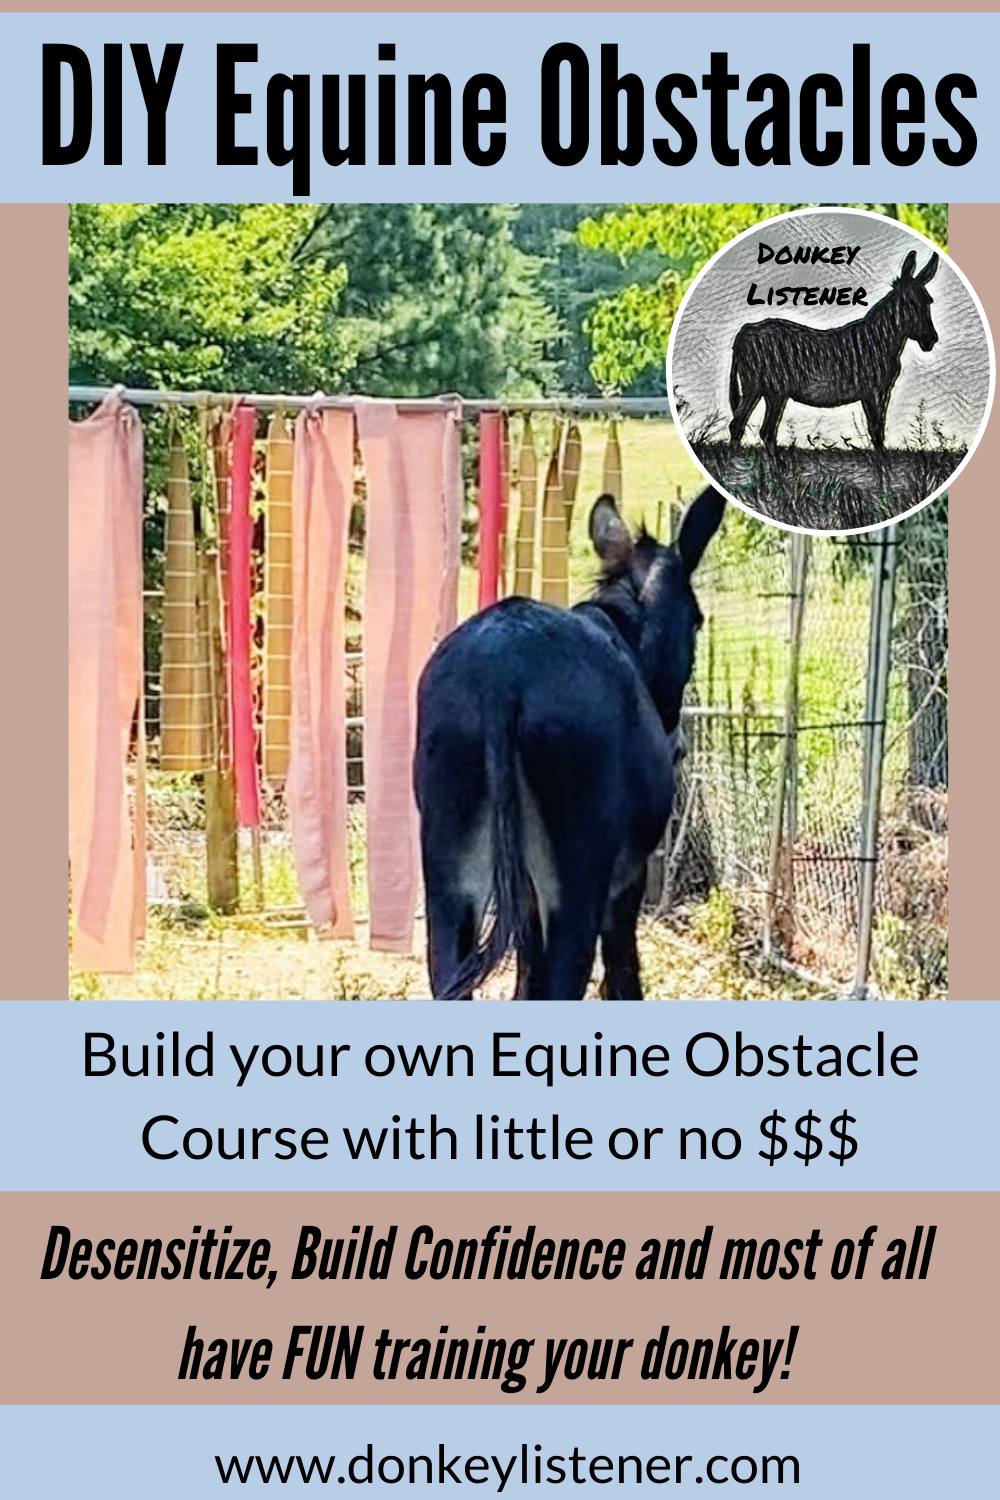 Build your own equine obstacle course